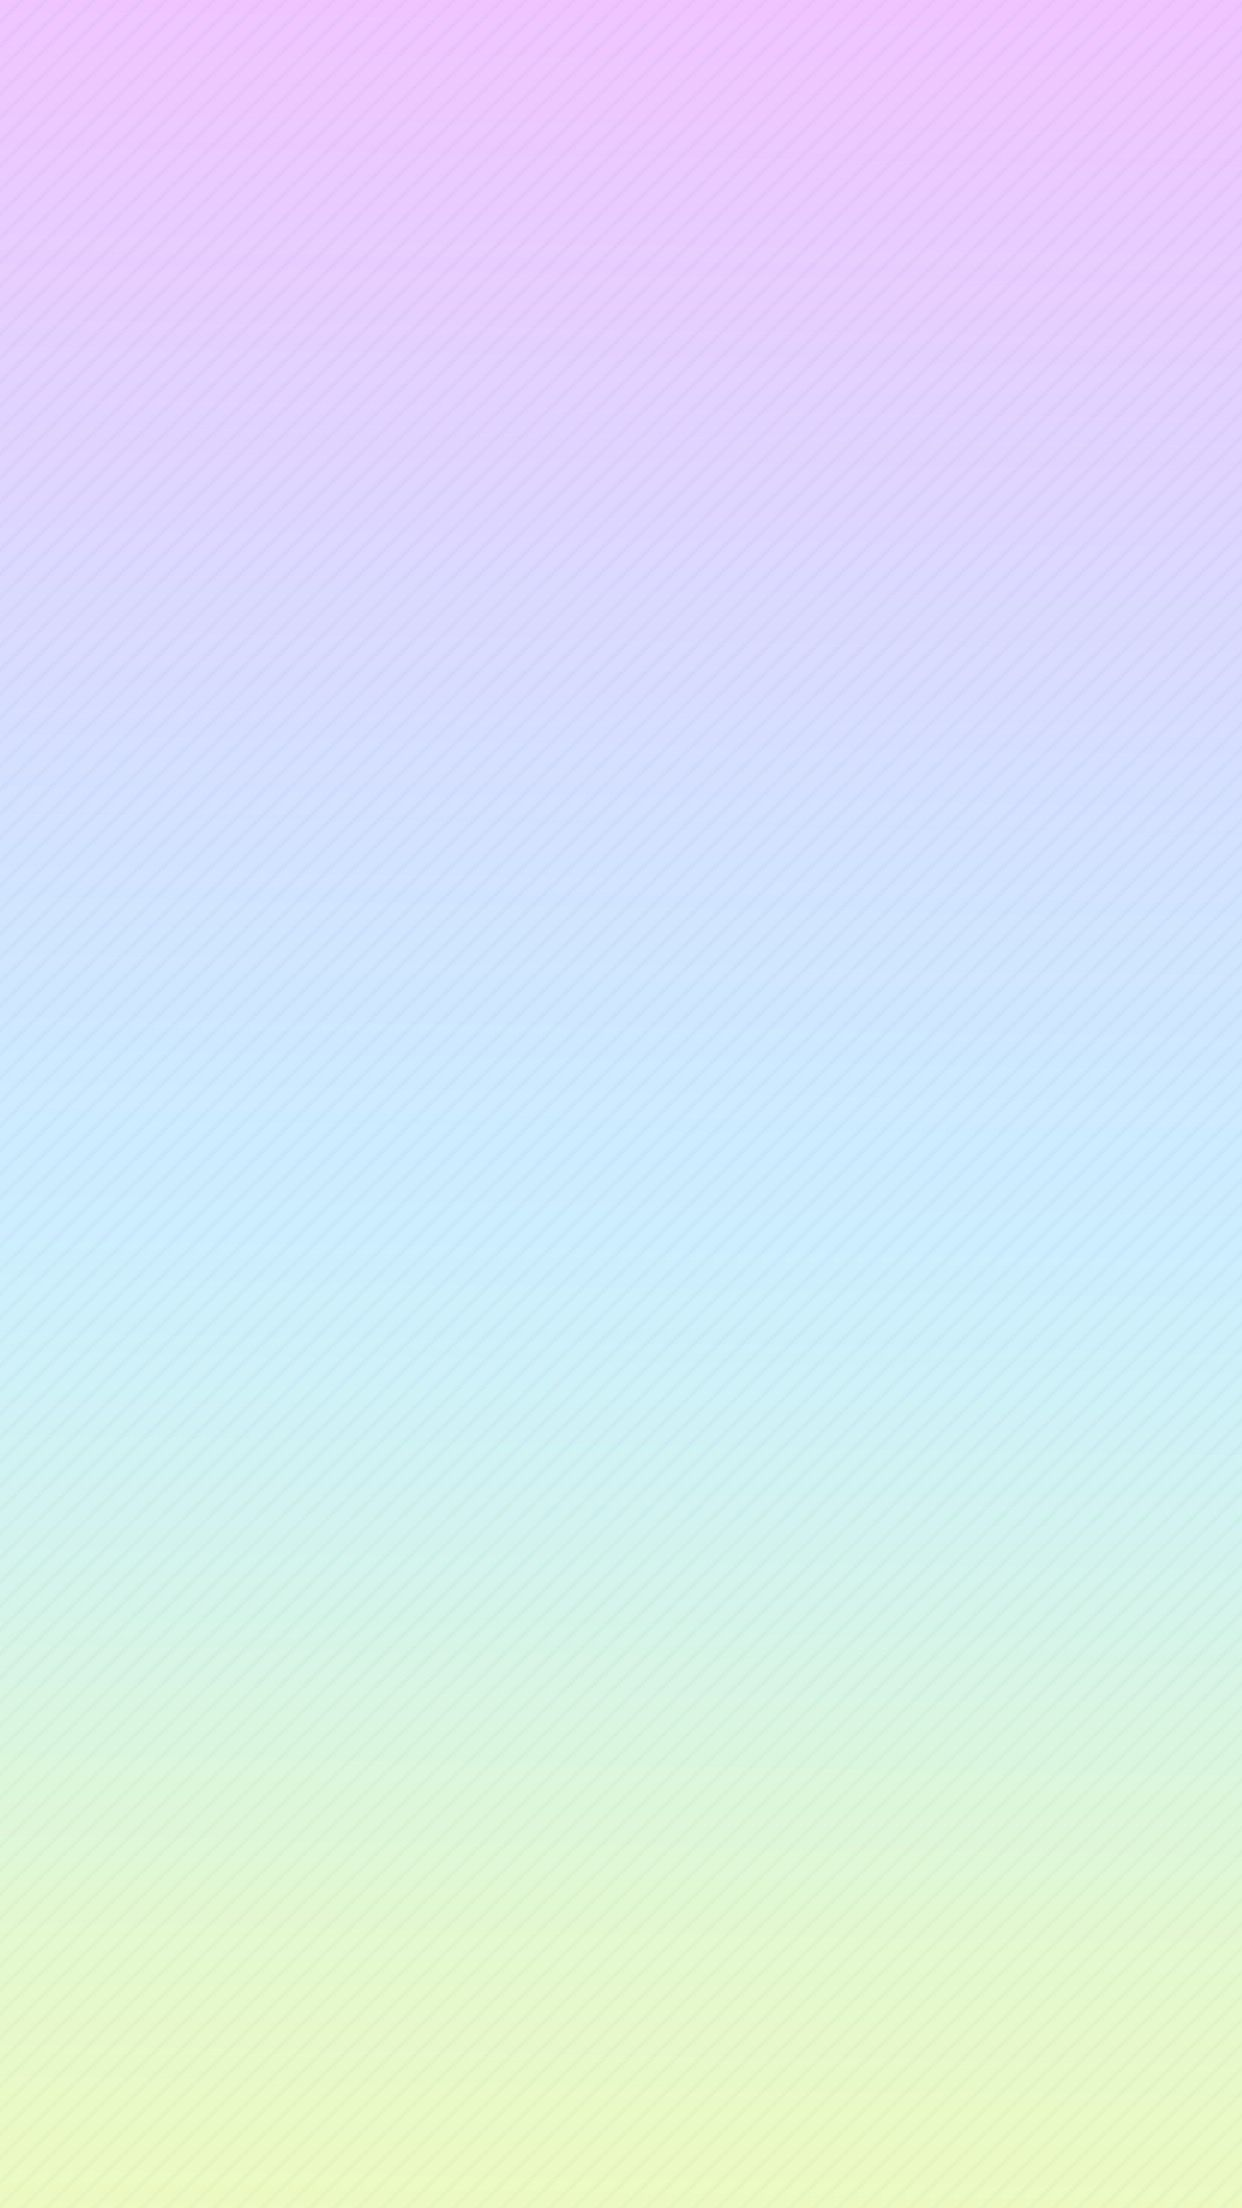 Wallpaper, Background, IPhone, Android, HD, Pink, Blue